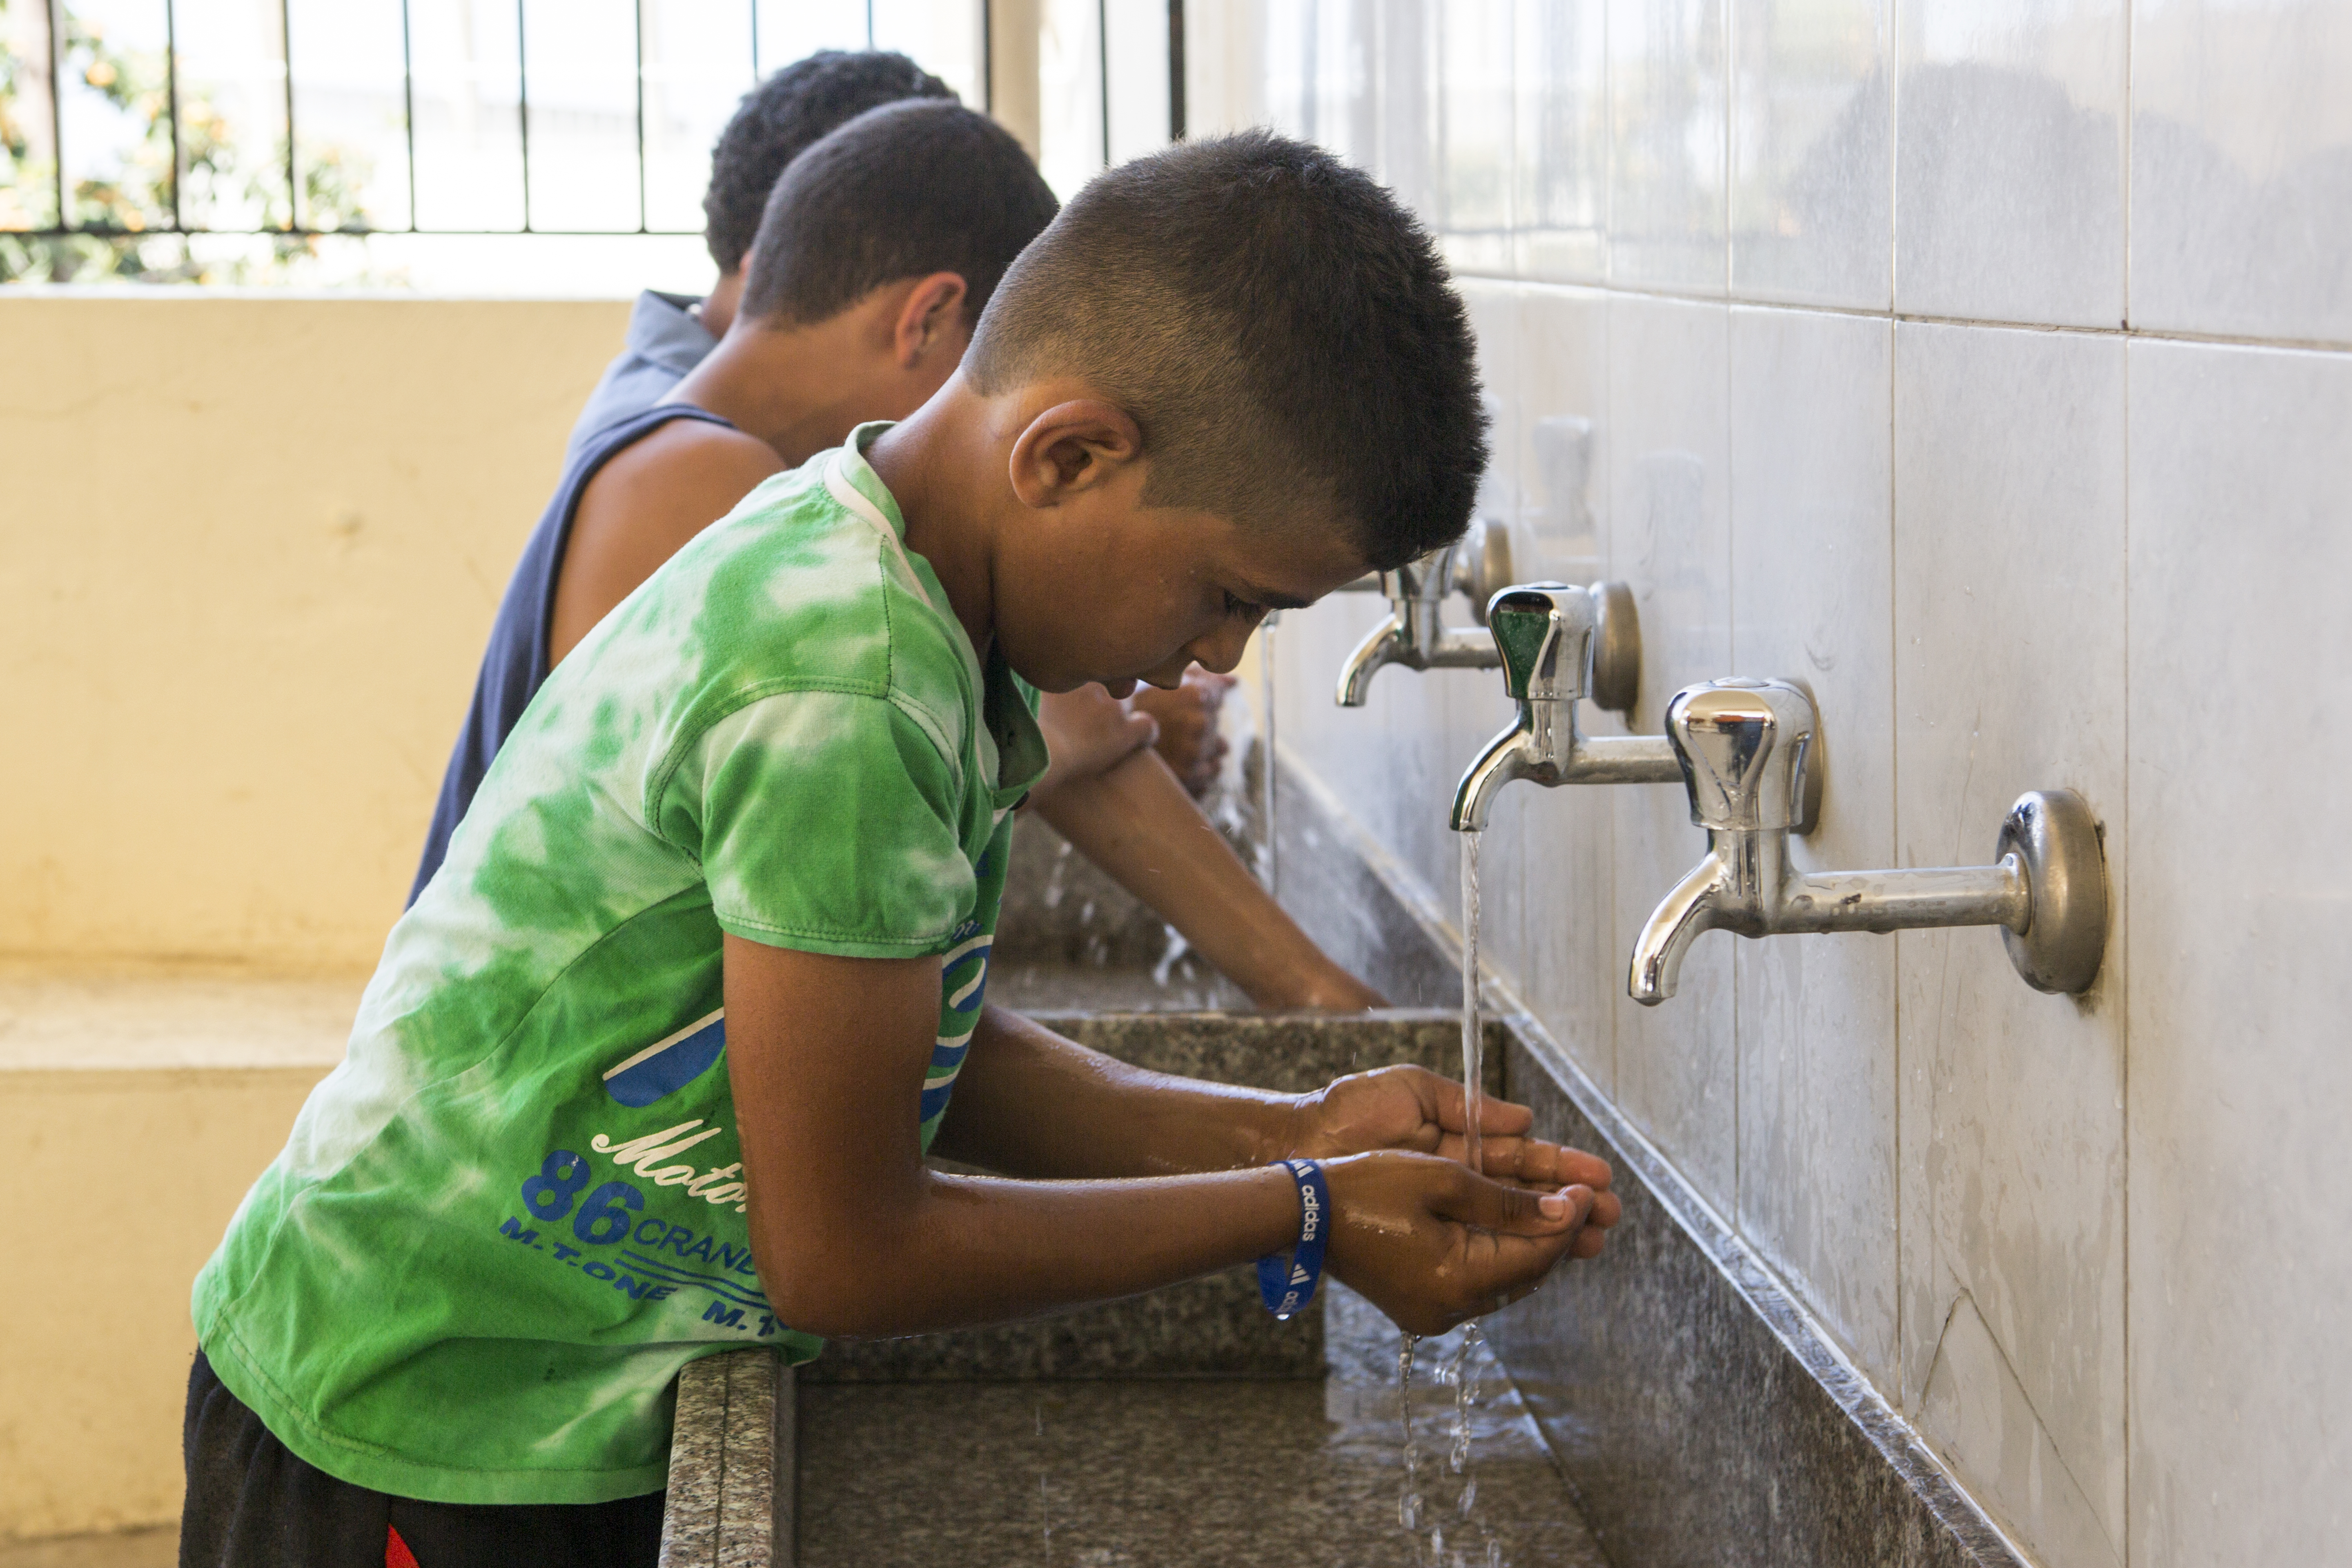 Boy washes his hands.